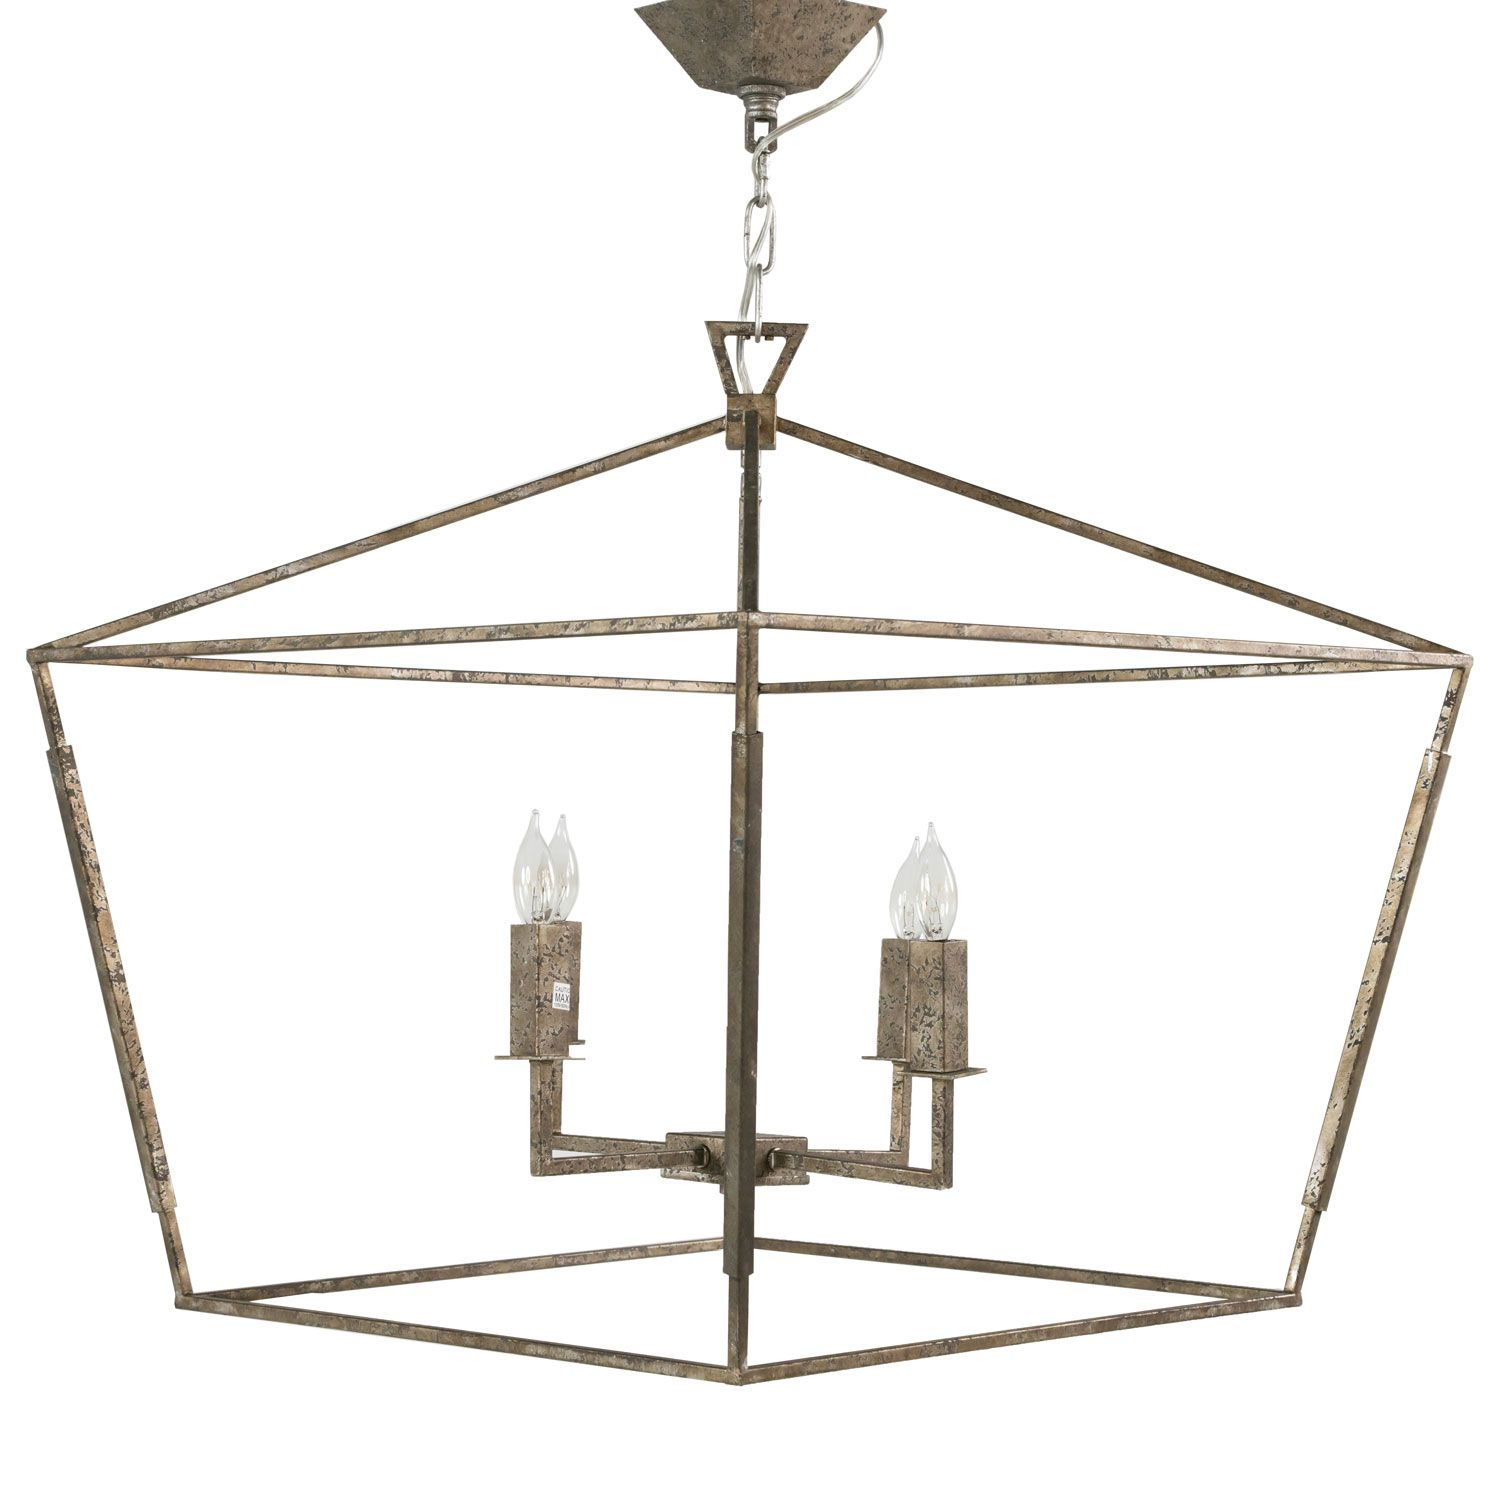 Gabby lighting amelia small chandelier ghsch153440 laylagrayce the small amelia chandelier features a rectangular metal design and transitional style finished in antique silver leaf arubaitofo Images